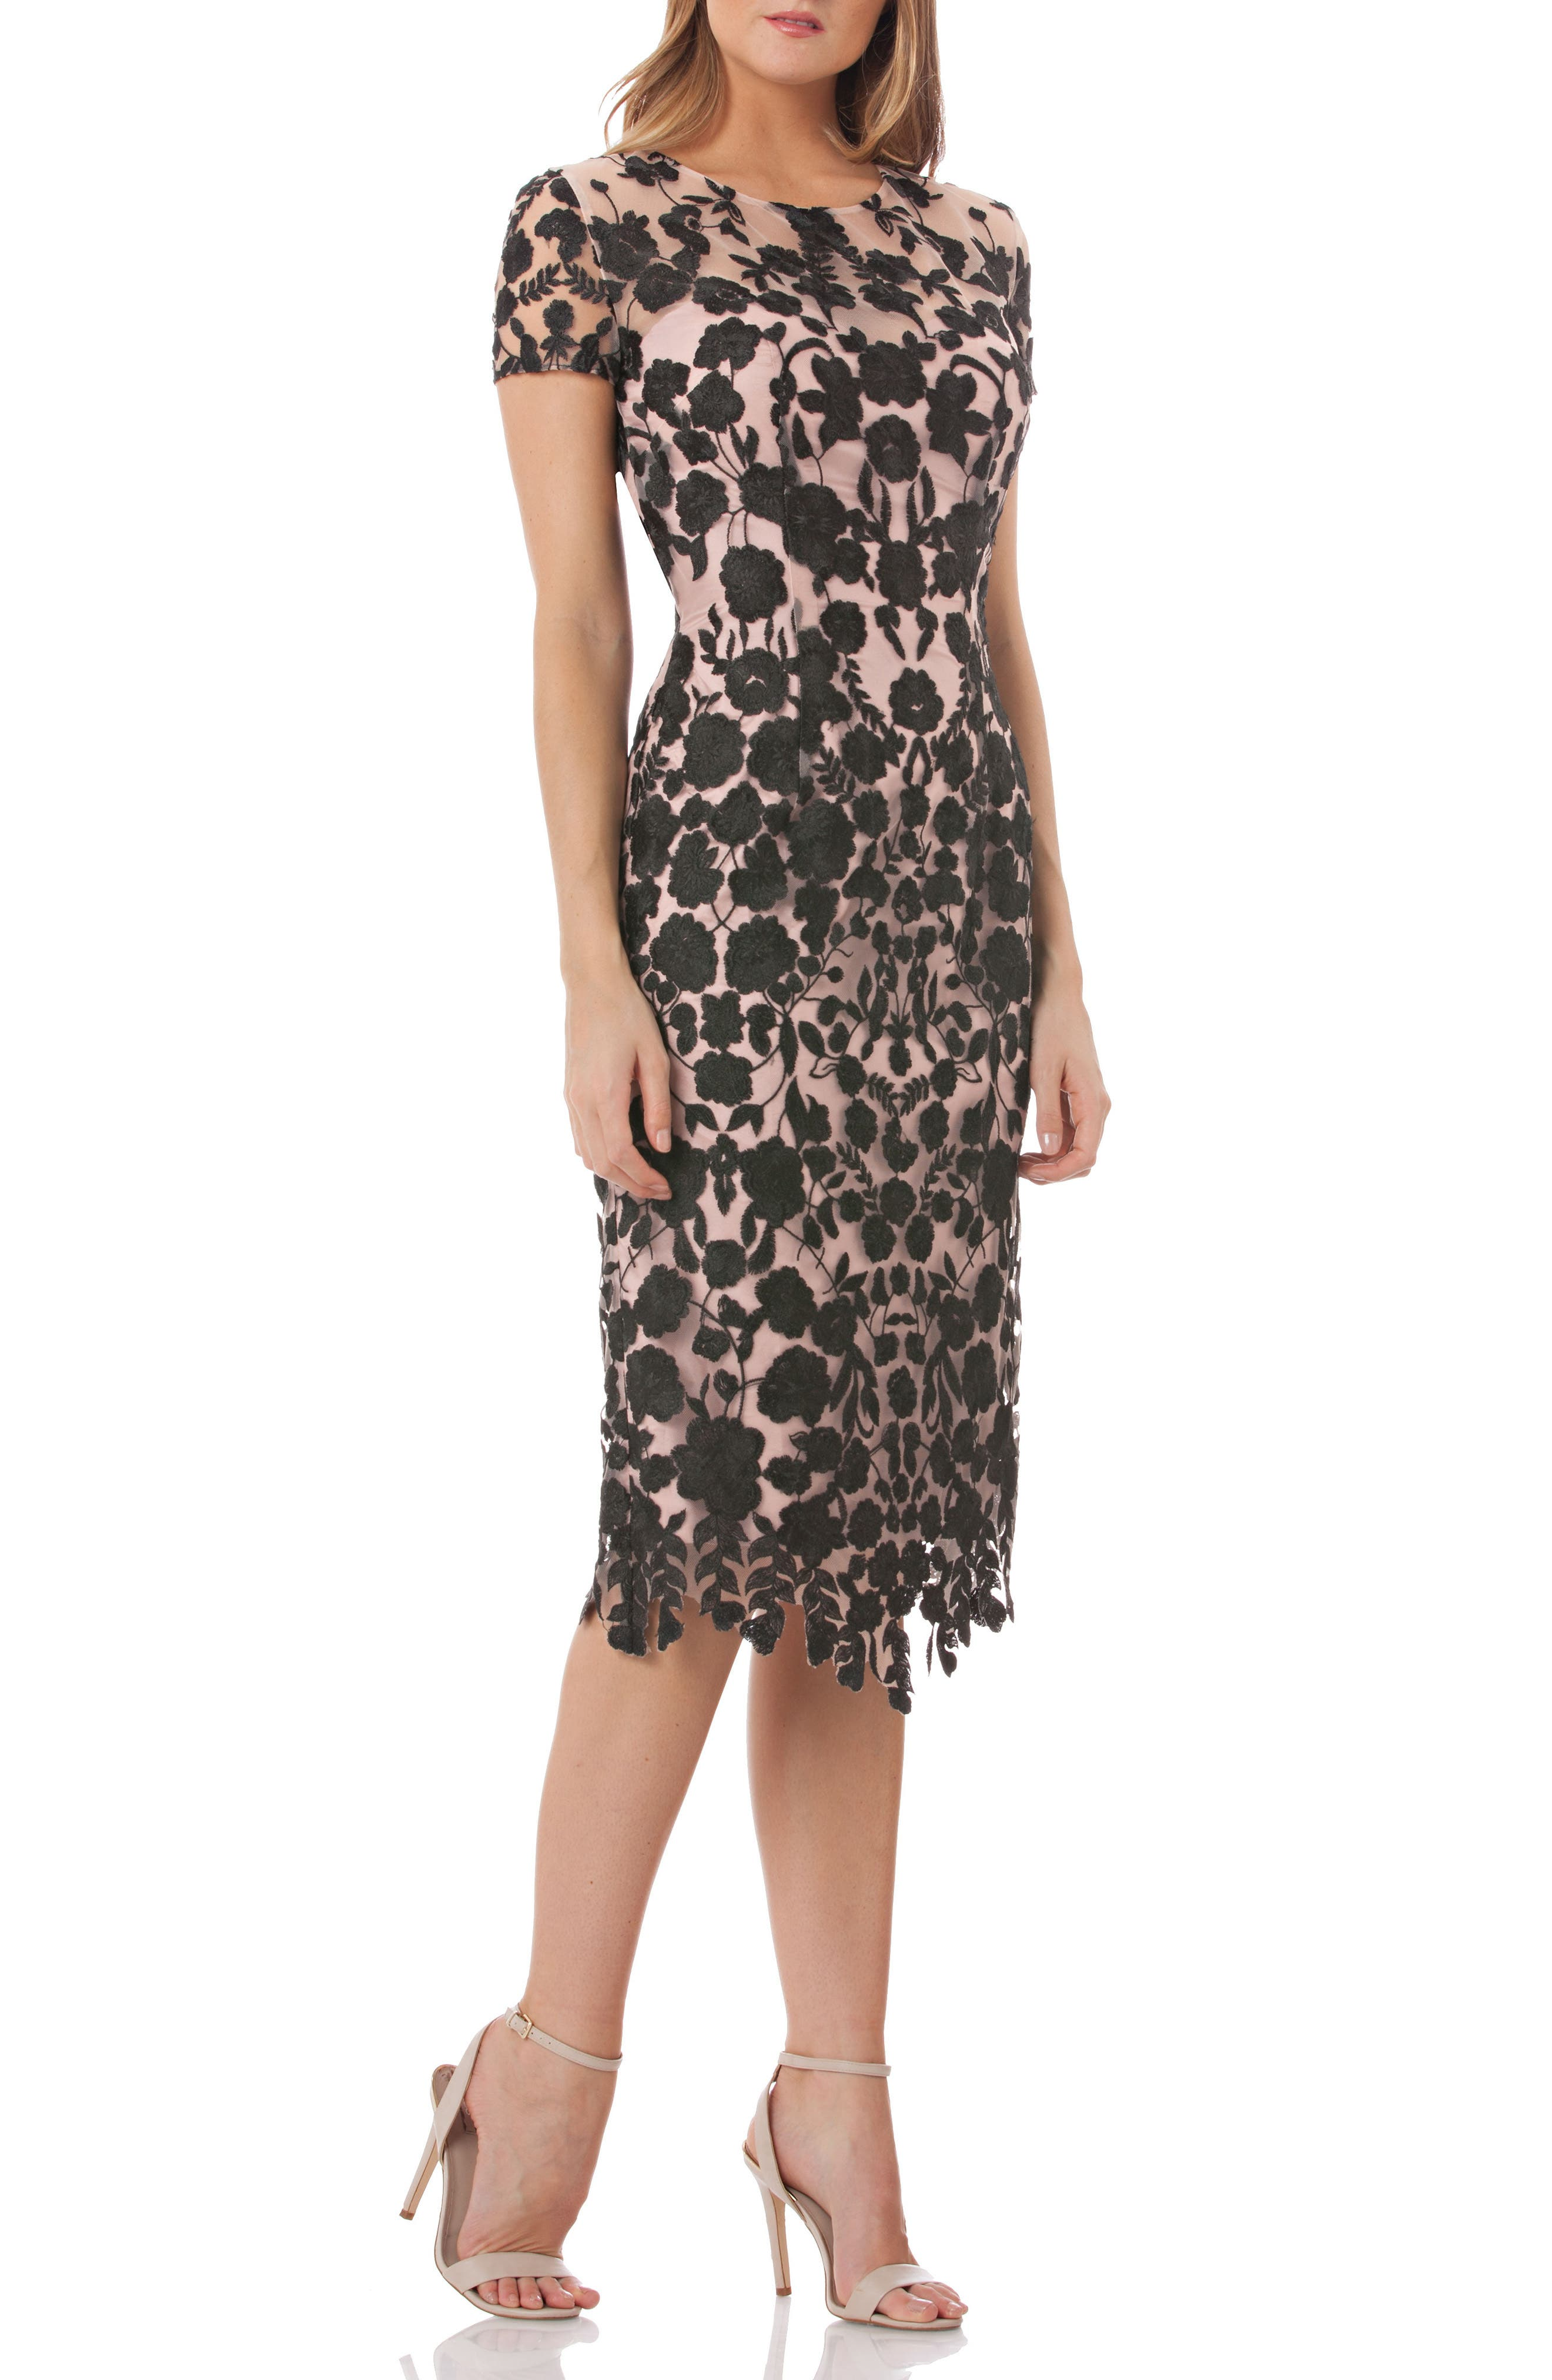 JS COLLECTIONS, Embroidered Midi Dress, Main thumbnail 1, color, 001